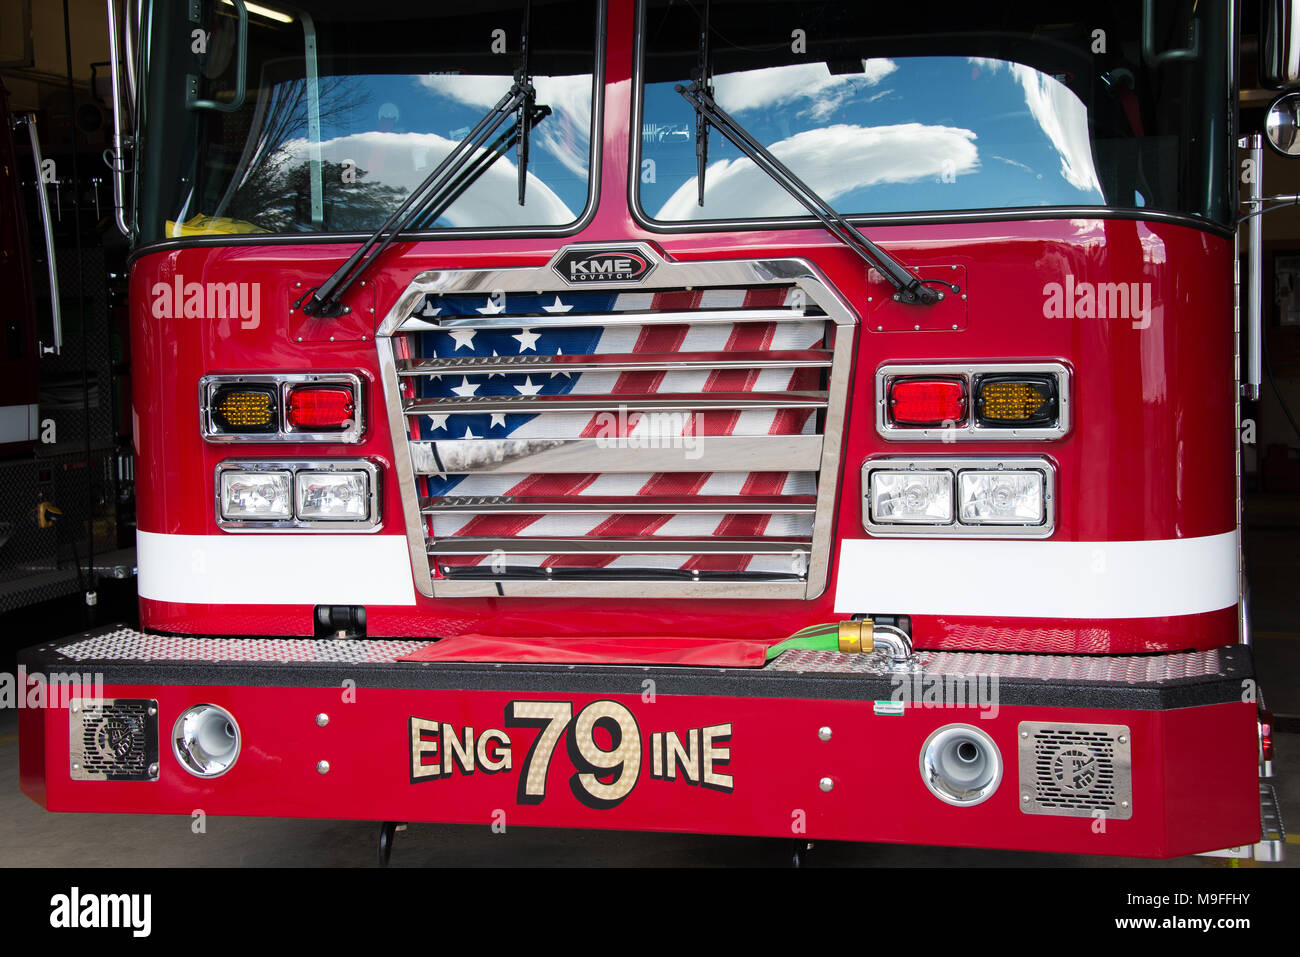 Front view of a KME fire truck parked inside the Speculator Volunteer Fire Department fire house in Speculator, NY USA - Stock Image